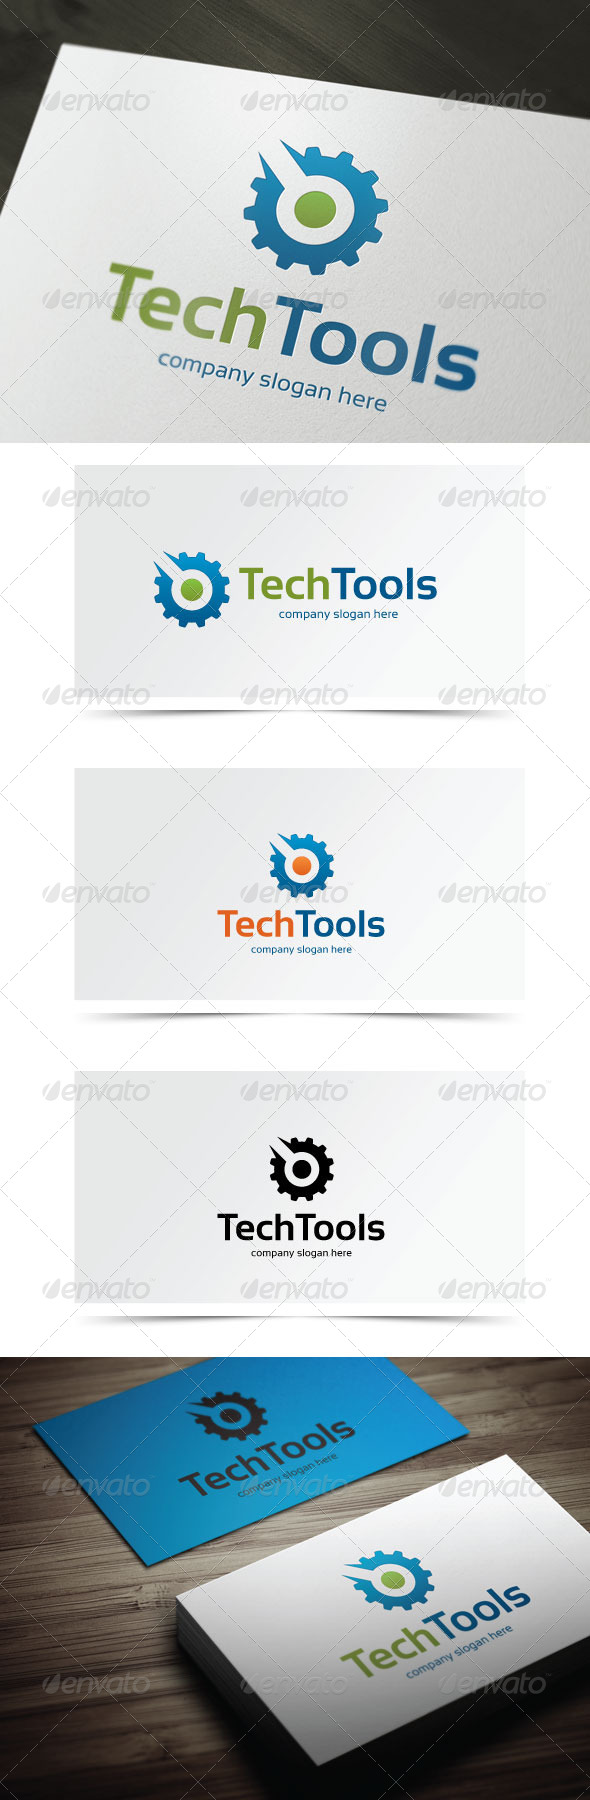 GraphicRiver Tech Tools 5853677